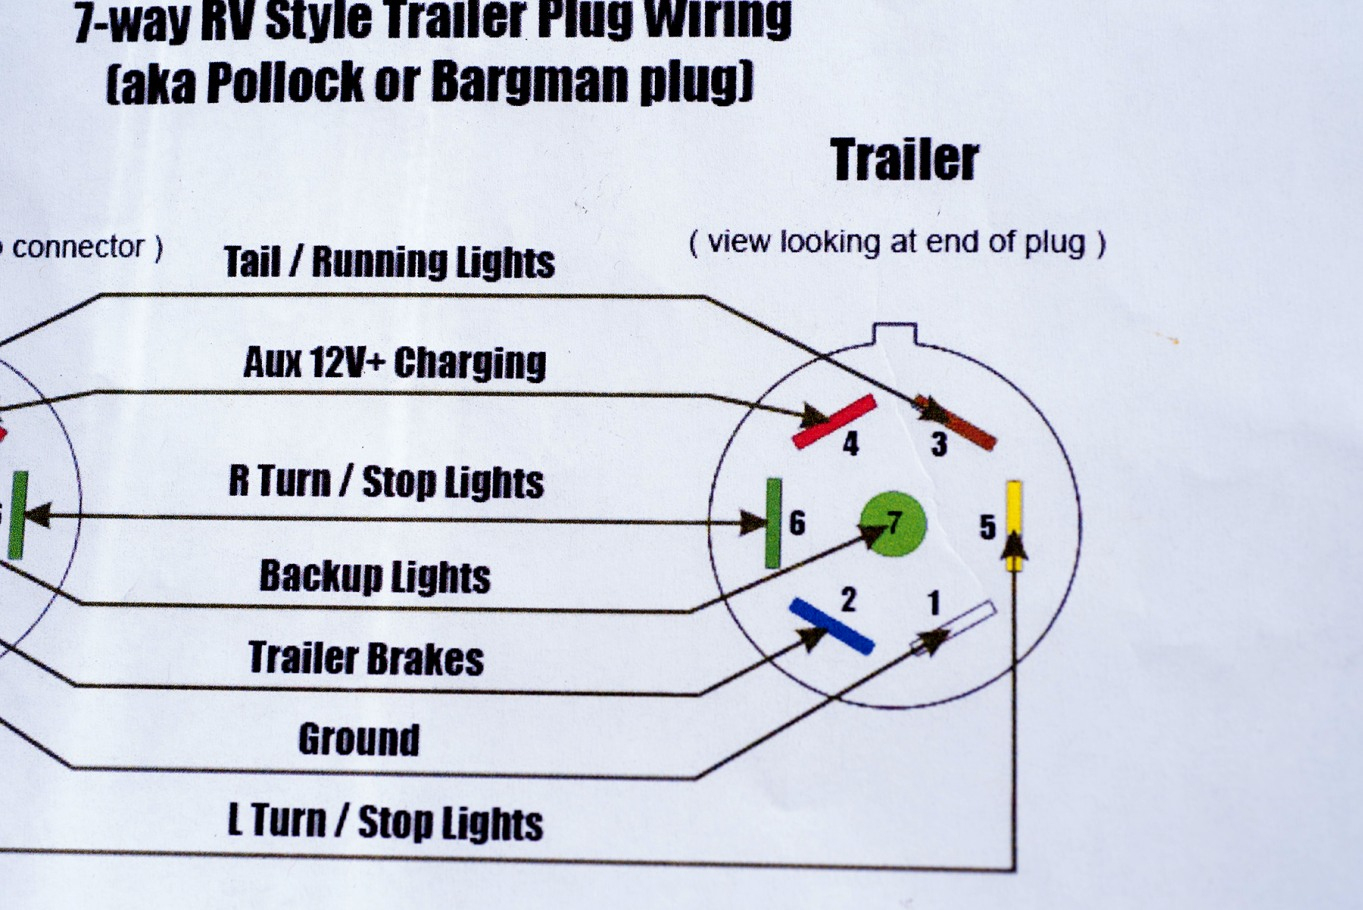 7 Round Trailer Wiring Diagram - Wiring Diagrams Hubs - Trailer Wiring Diagram 6 Round